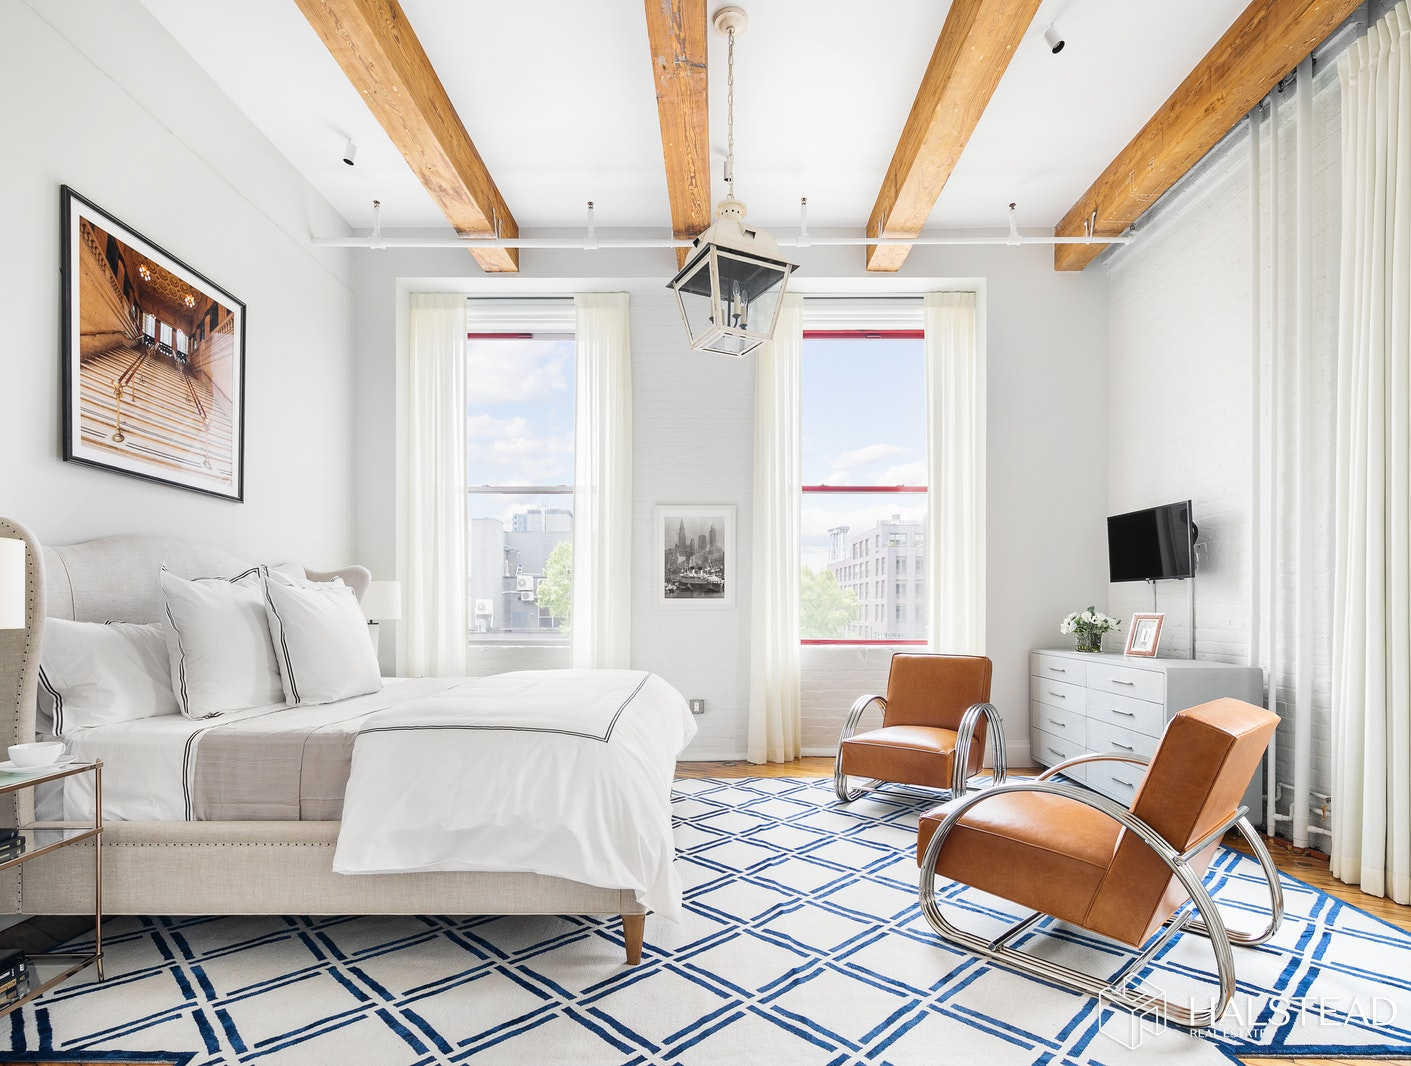 85 -101 North 3rd St 302/3, Williamsburg, Brooklyn, NY, 11211, $5,995,000, Property For Sale, Halstead Real Estate, Photo 15